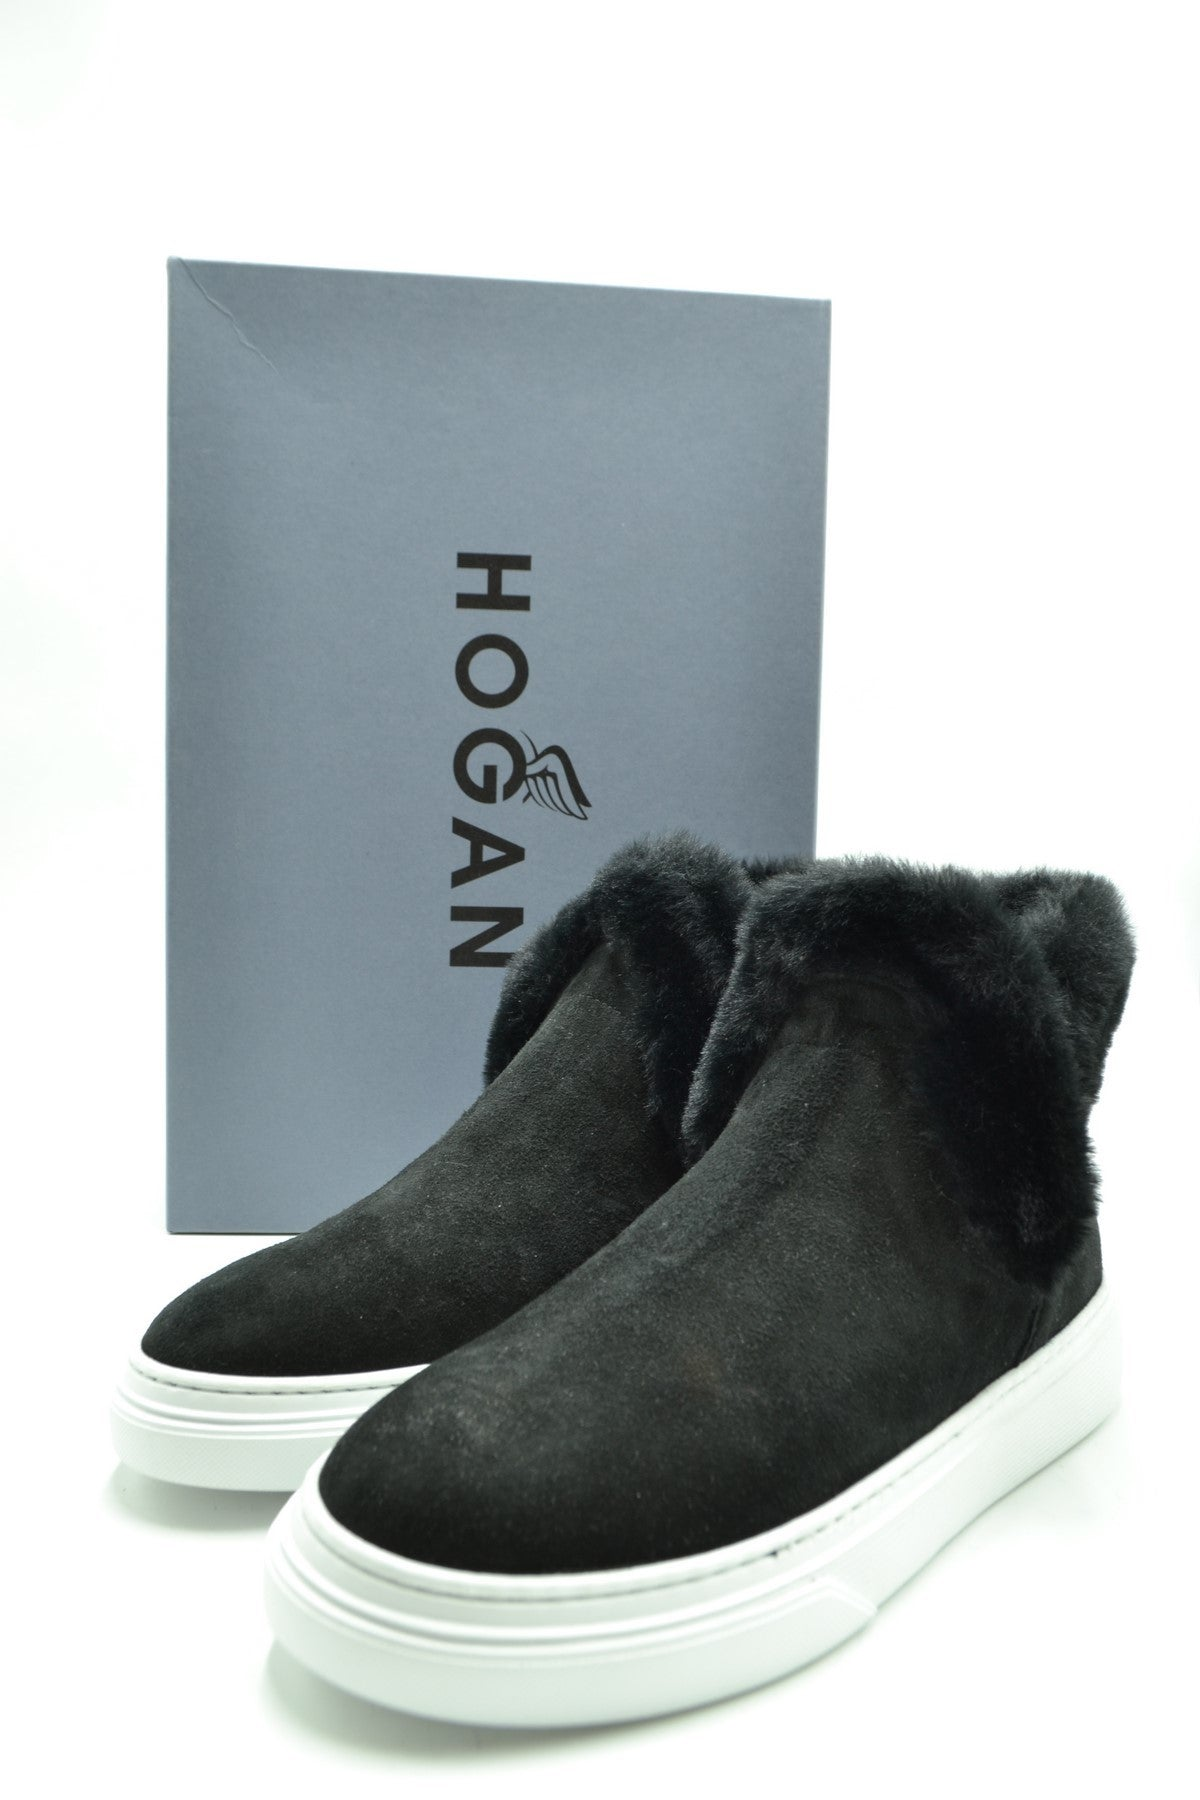 Shoes Hogan-Women's Fashion - Women's Shoes - Women's Boots-Product Details Terms: New With LabelMain Color: BlackType Of Accessory: BootsSeason: Fall / WinterMade In: ItalyGender: WomanSize: EuComposition: Chamois 100%Year: 2020Manufacturer Part Number: Hxw3660Ao30Jfhb999-Keyomi-Sook